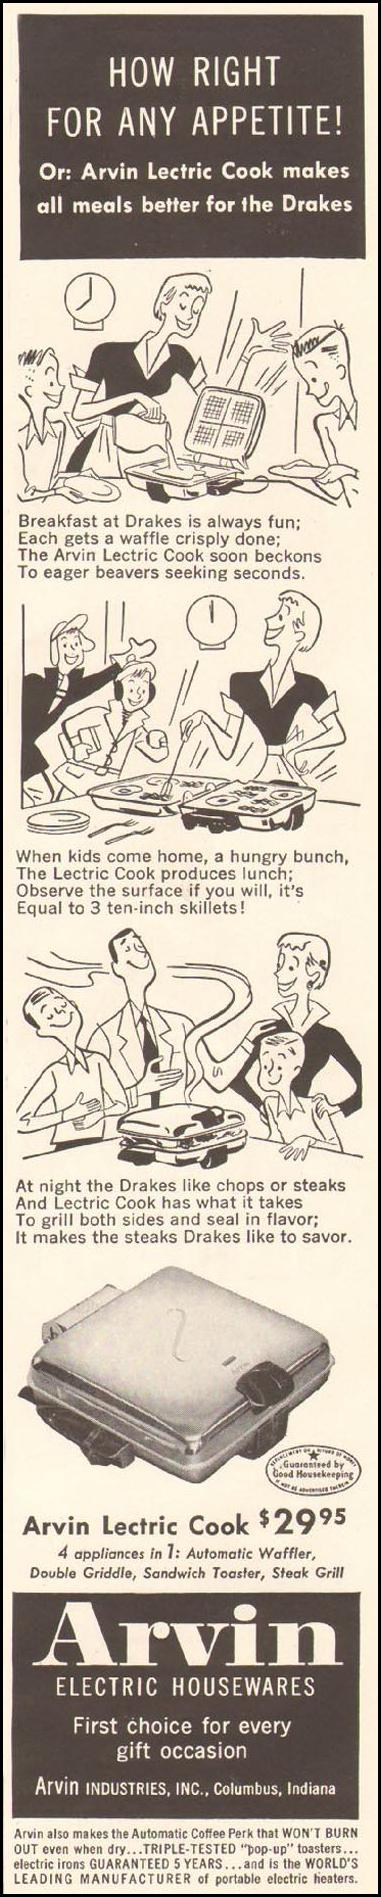 ARVIN LECTRIC COOK LADIES' HOME JOURNAL 03/01/1954 p. 121